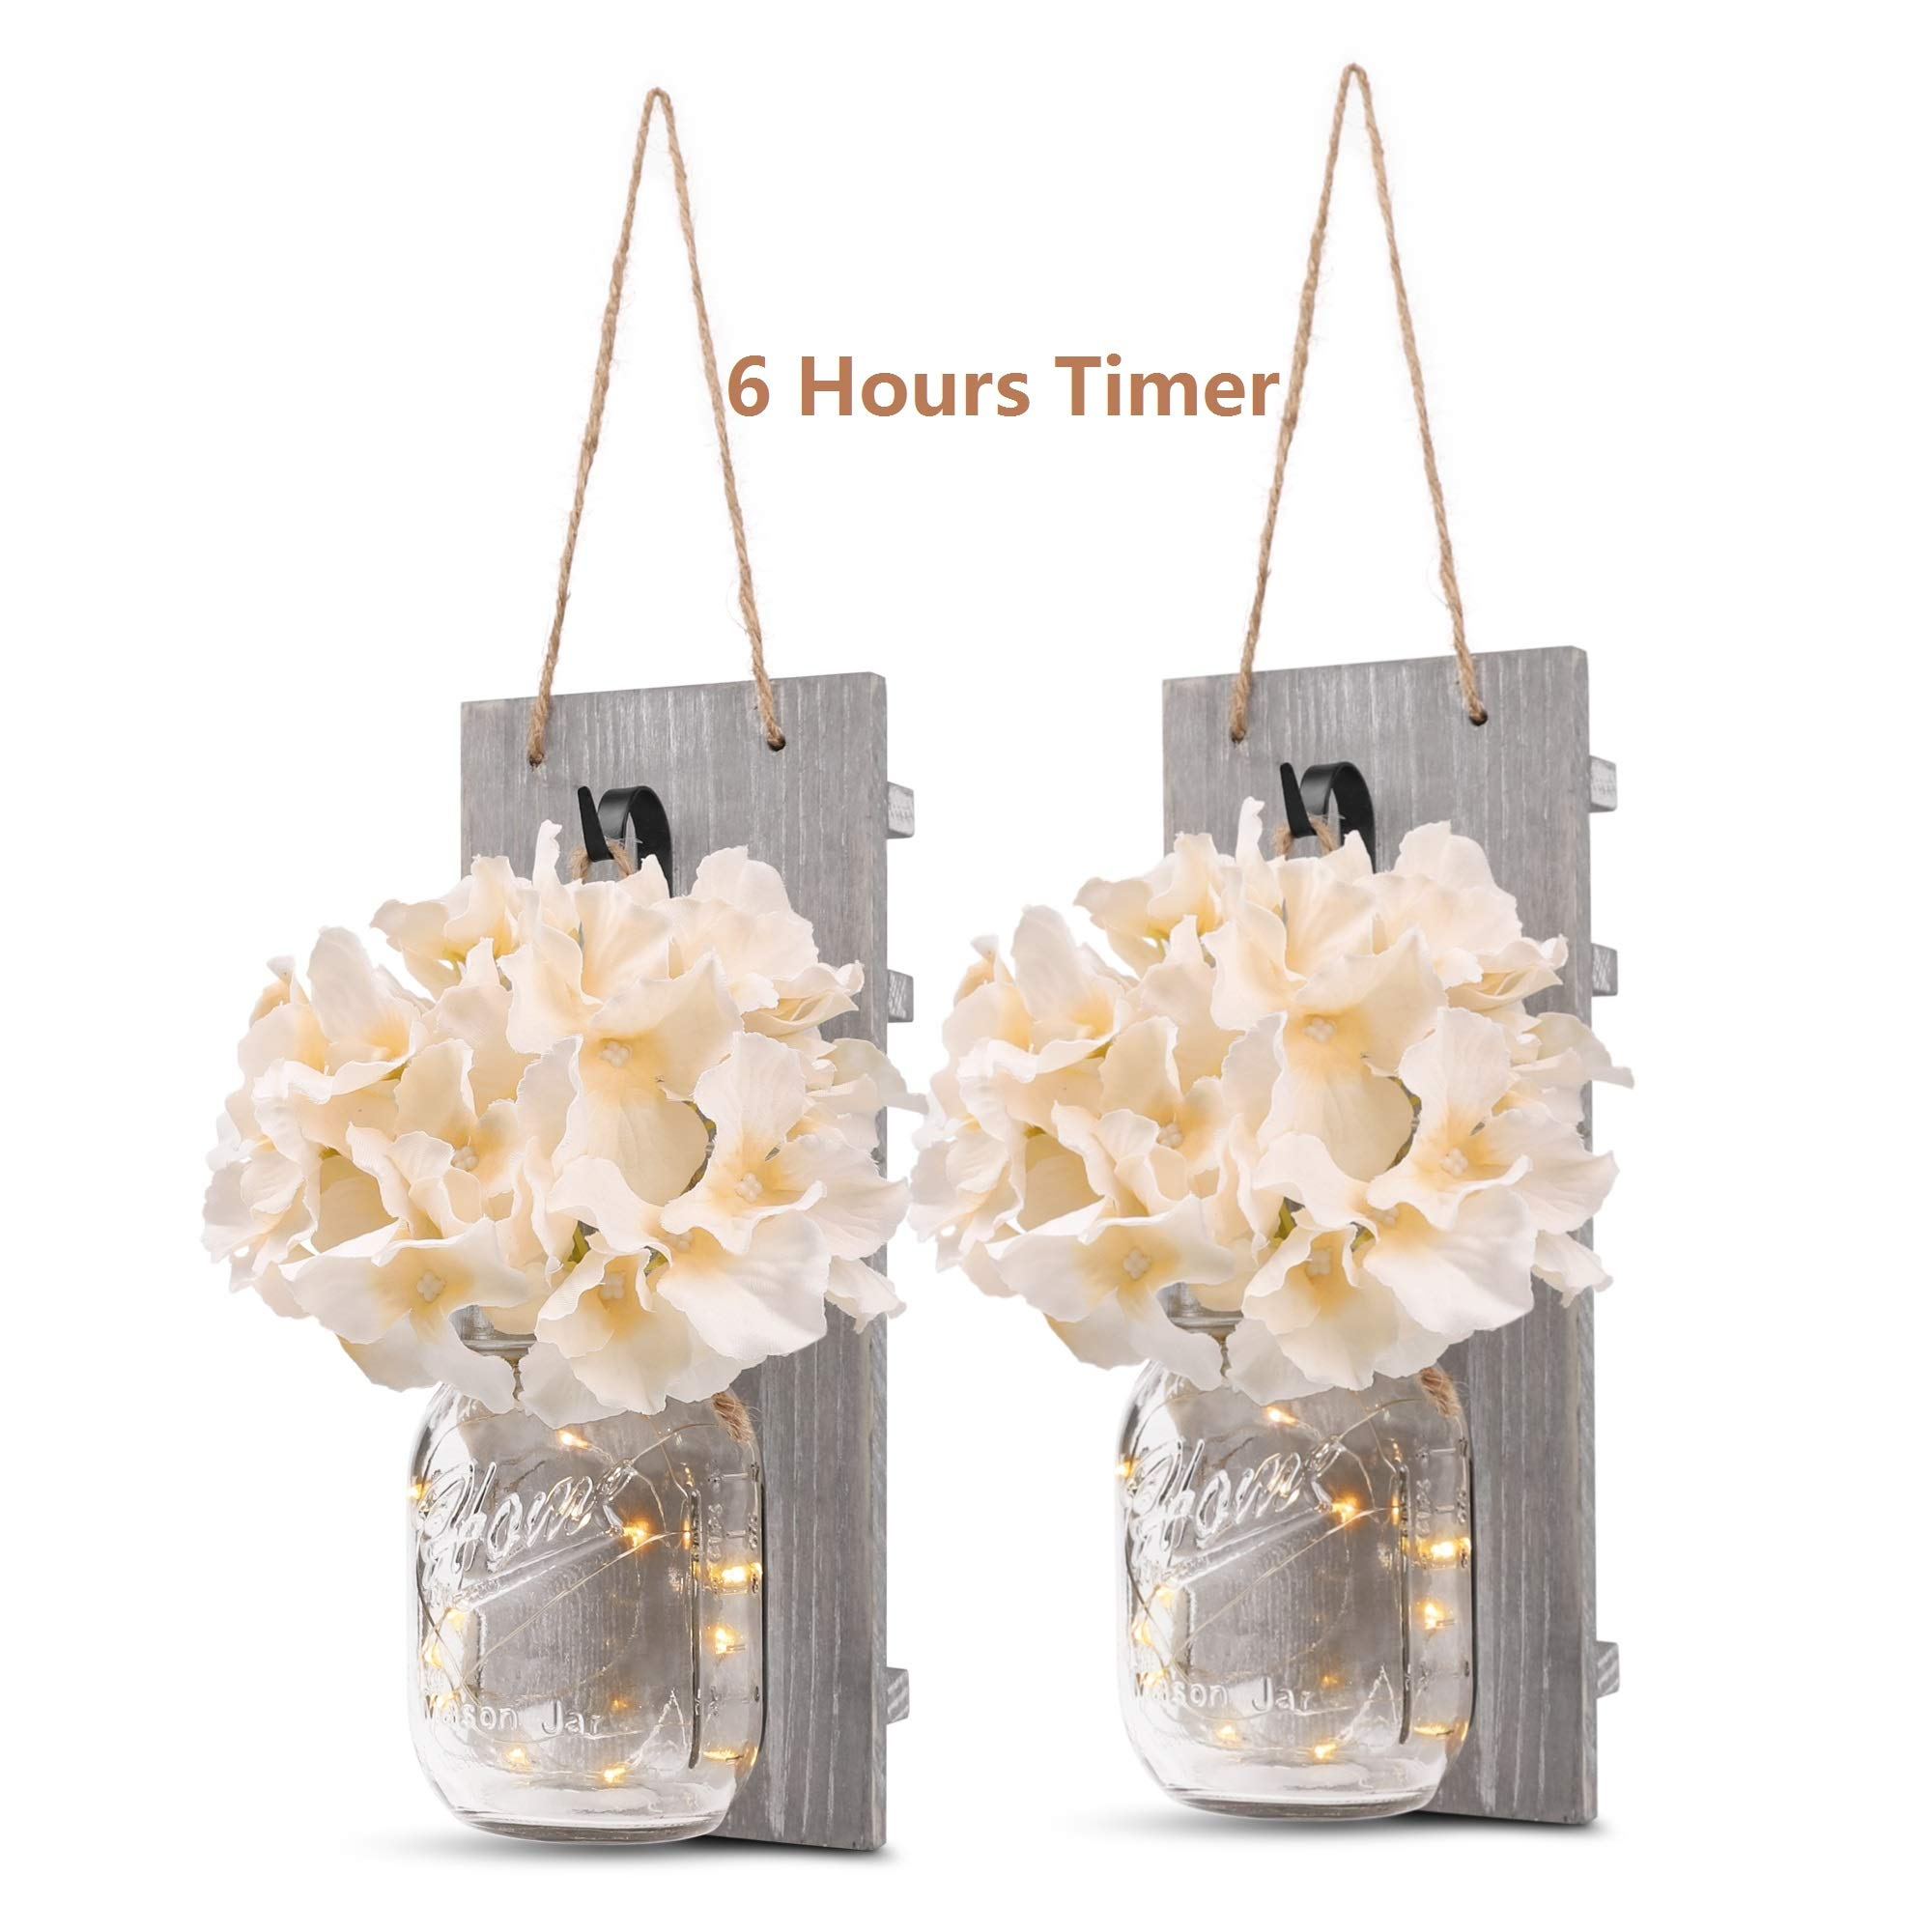 GBtroo Rustic Wall Sconces - Mason Jars Sconce, Rustic Home Decor,Wrought Iron Hooks, Silk Hydrangea and LED Strip Lights Design 6 Hour Timer Home Decoration (Set of 2) by GBtroo